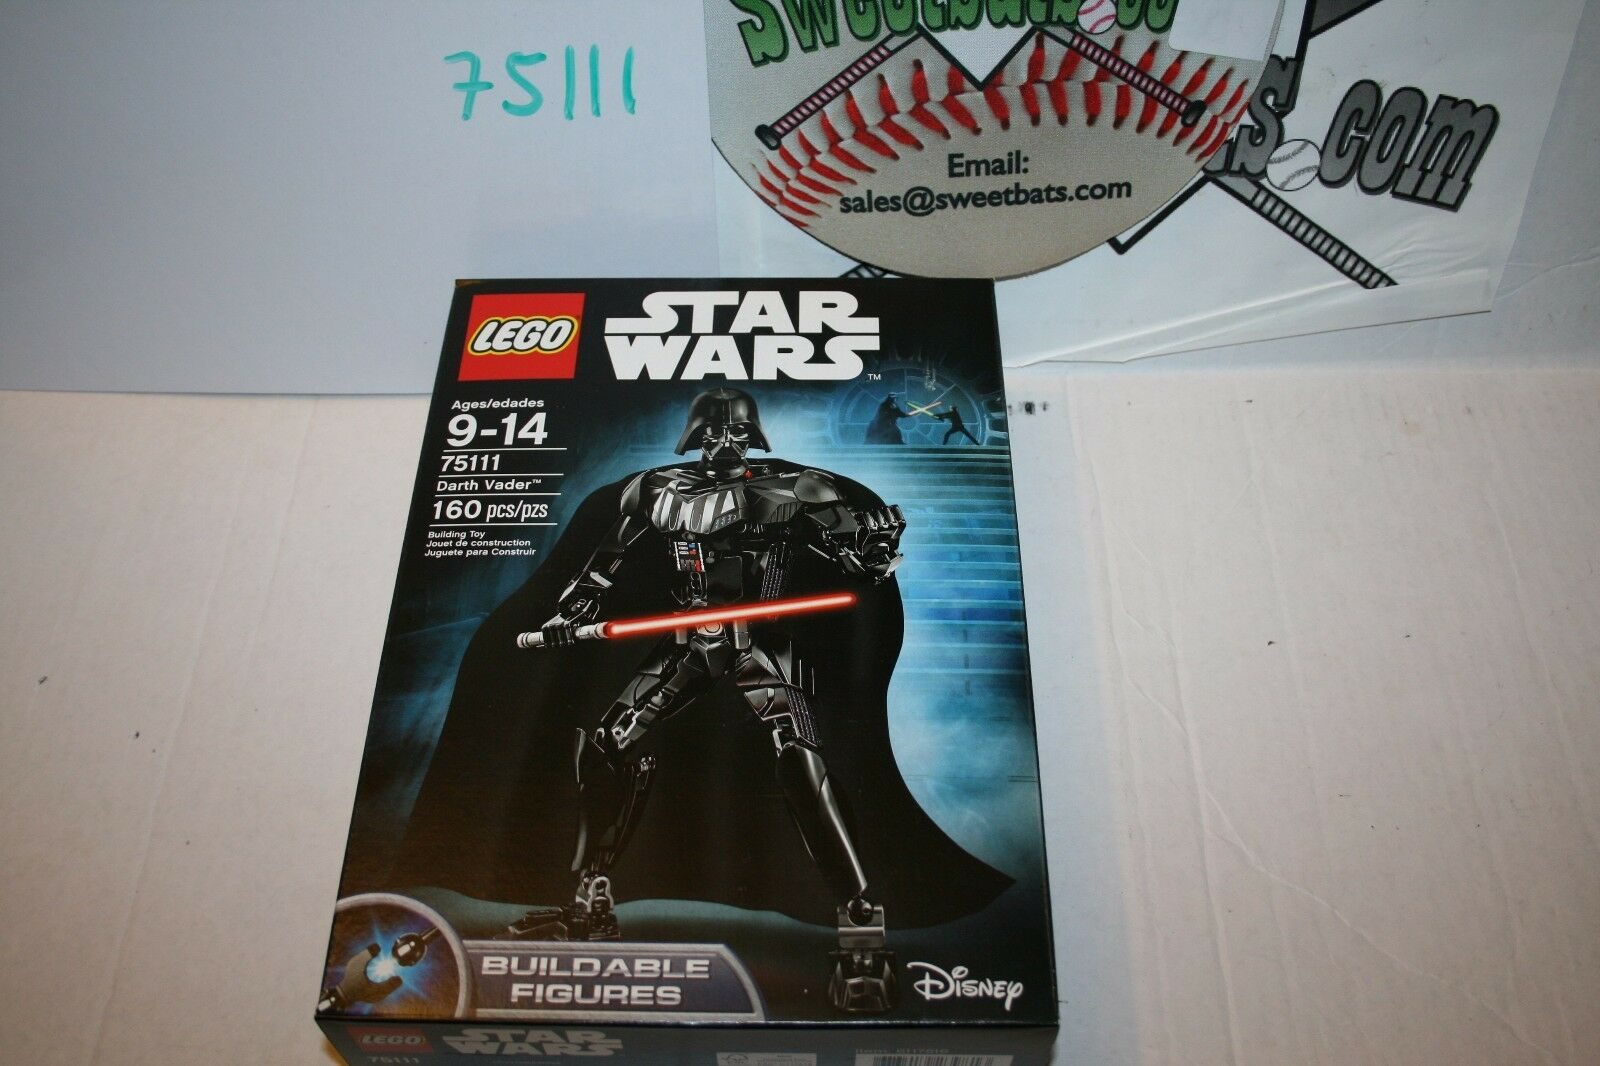 75111 Lego Star Wars Darth Vader New Sealed NIB 160 pcs Pieces Return of Jedi